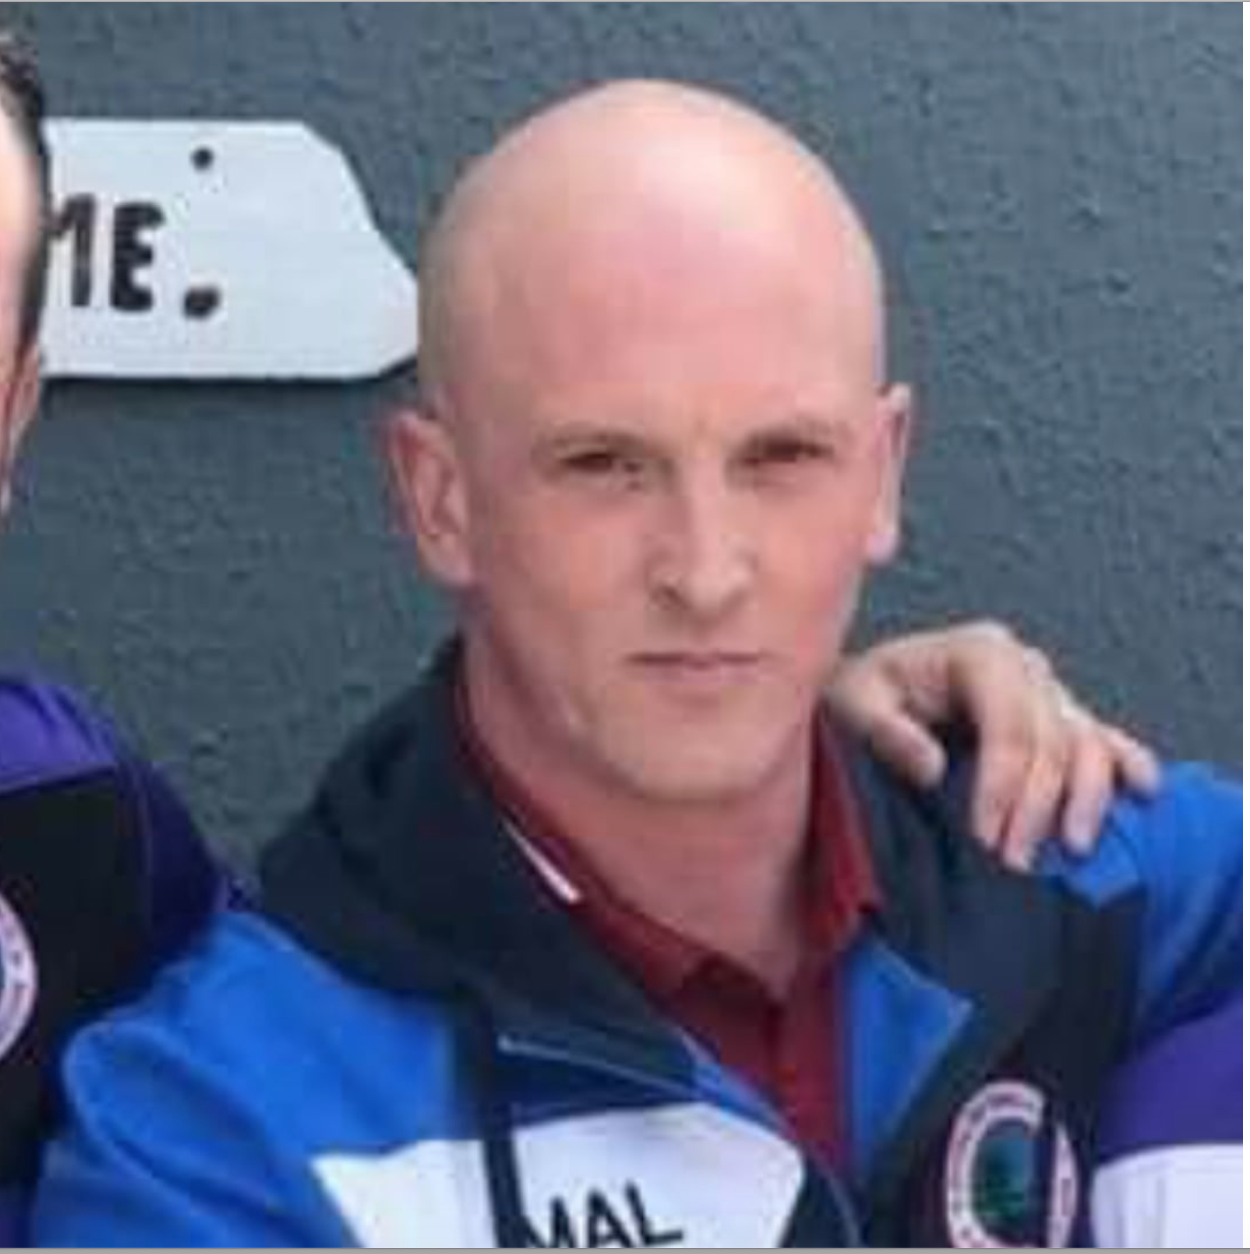 TRAGEDY: Michael Óg Willis was a enthusiastic organiser of activities for young people in the area including Colin Valley football teams.